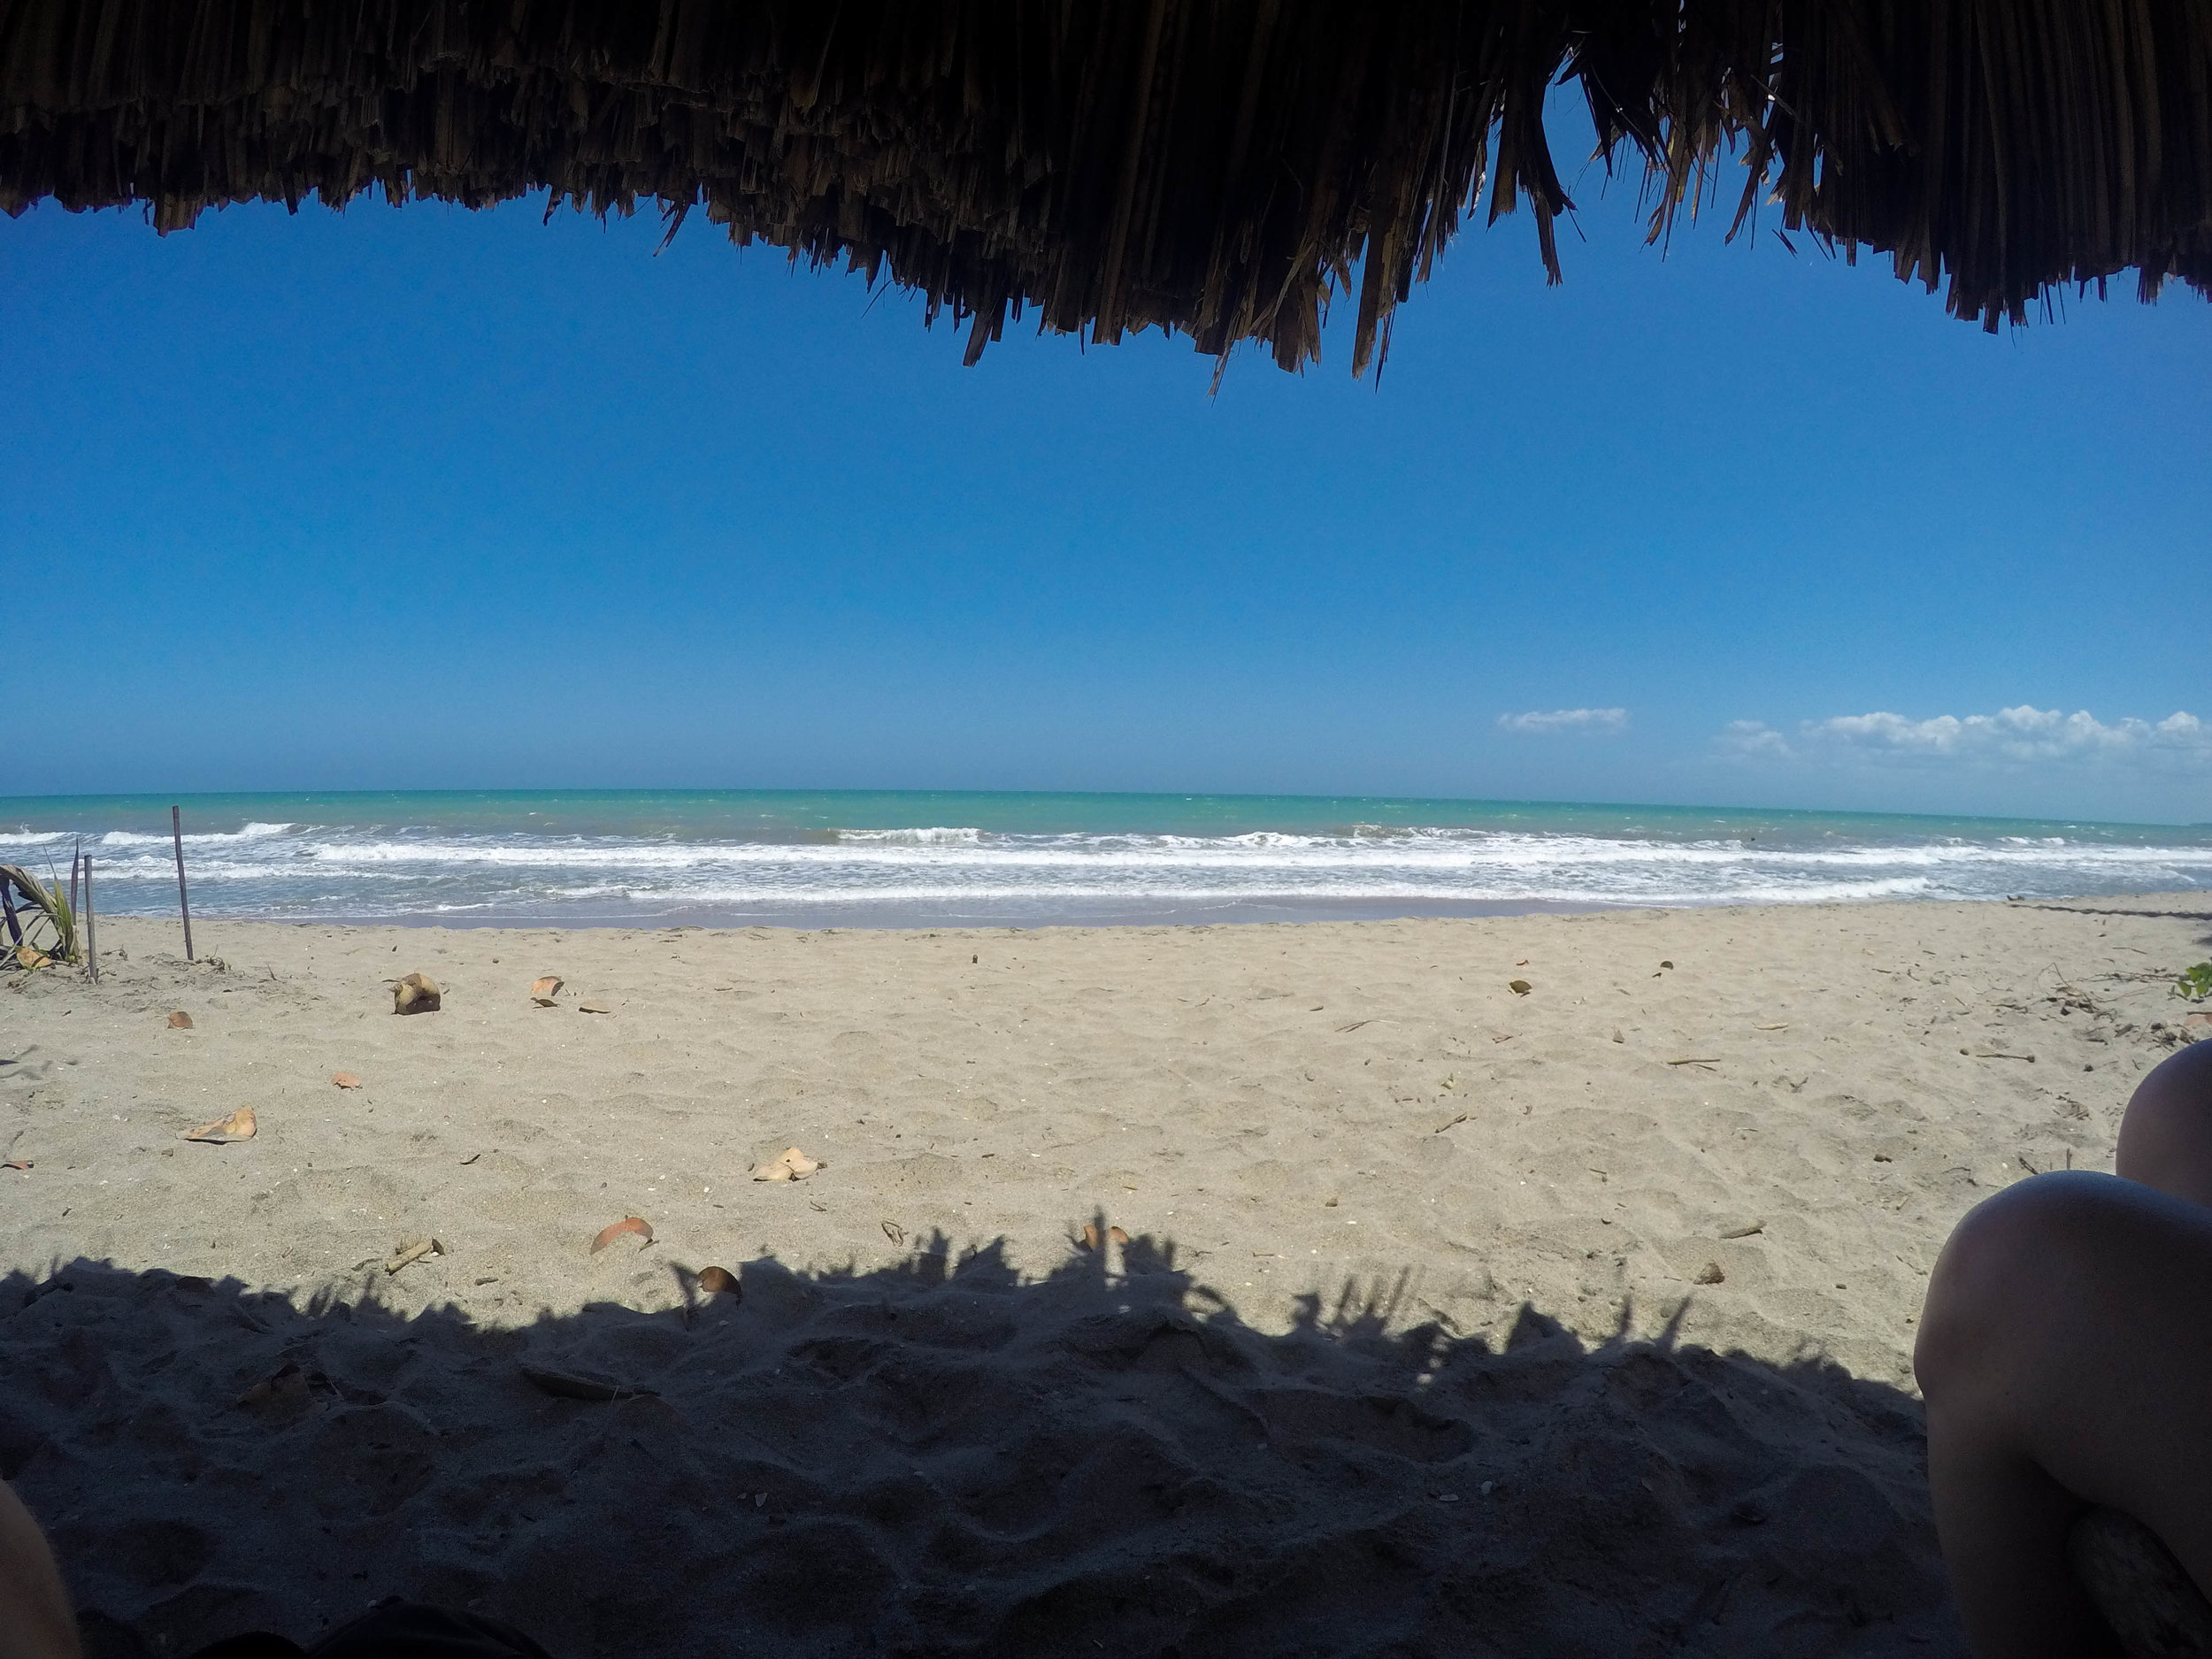 A Day At The Beach in Palomino, Colombia